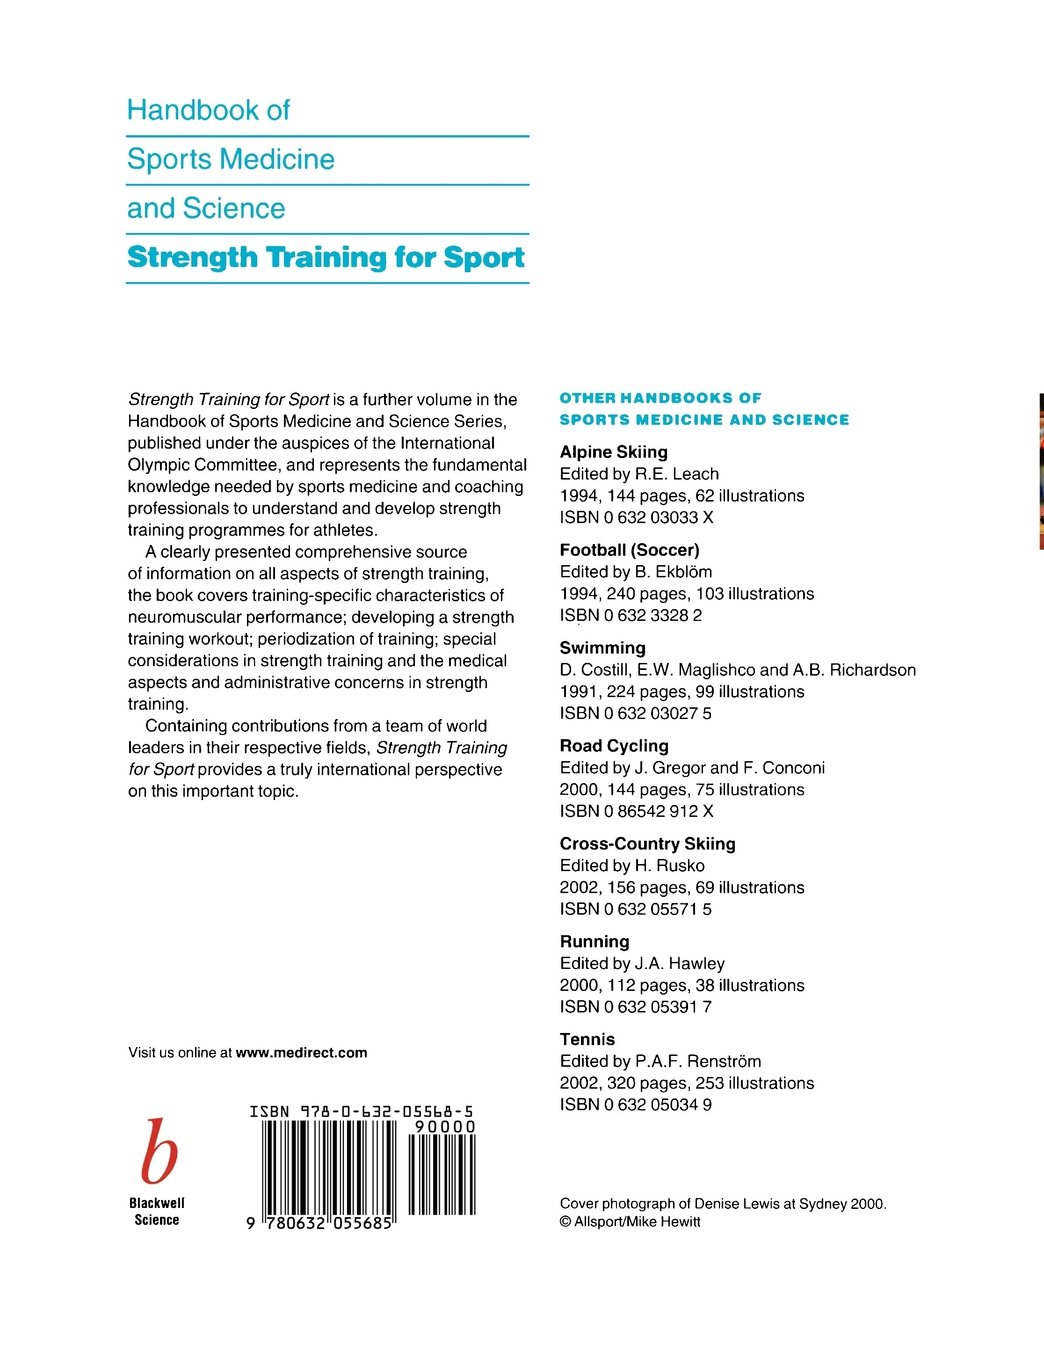 Handbook of Sports Medicine and Science: Strength Training for Sport